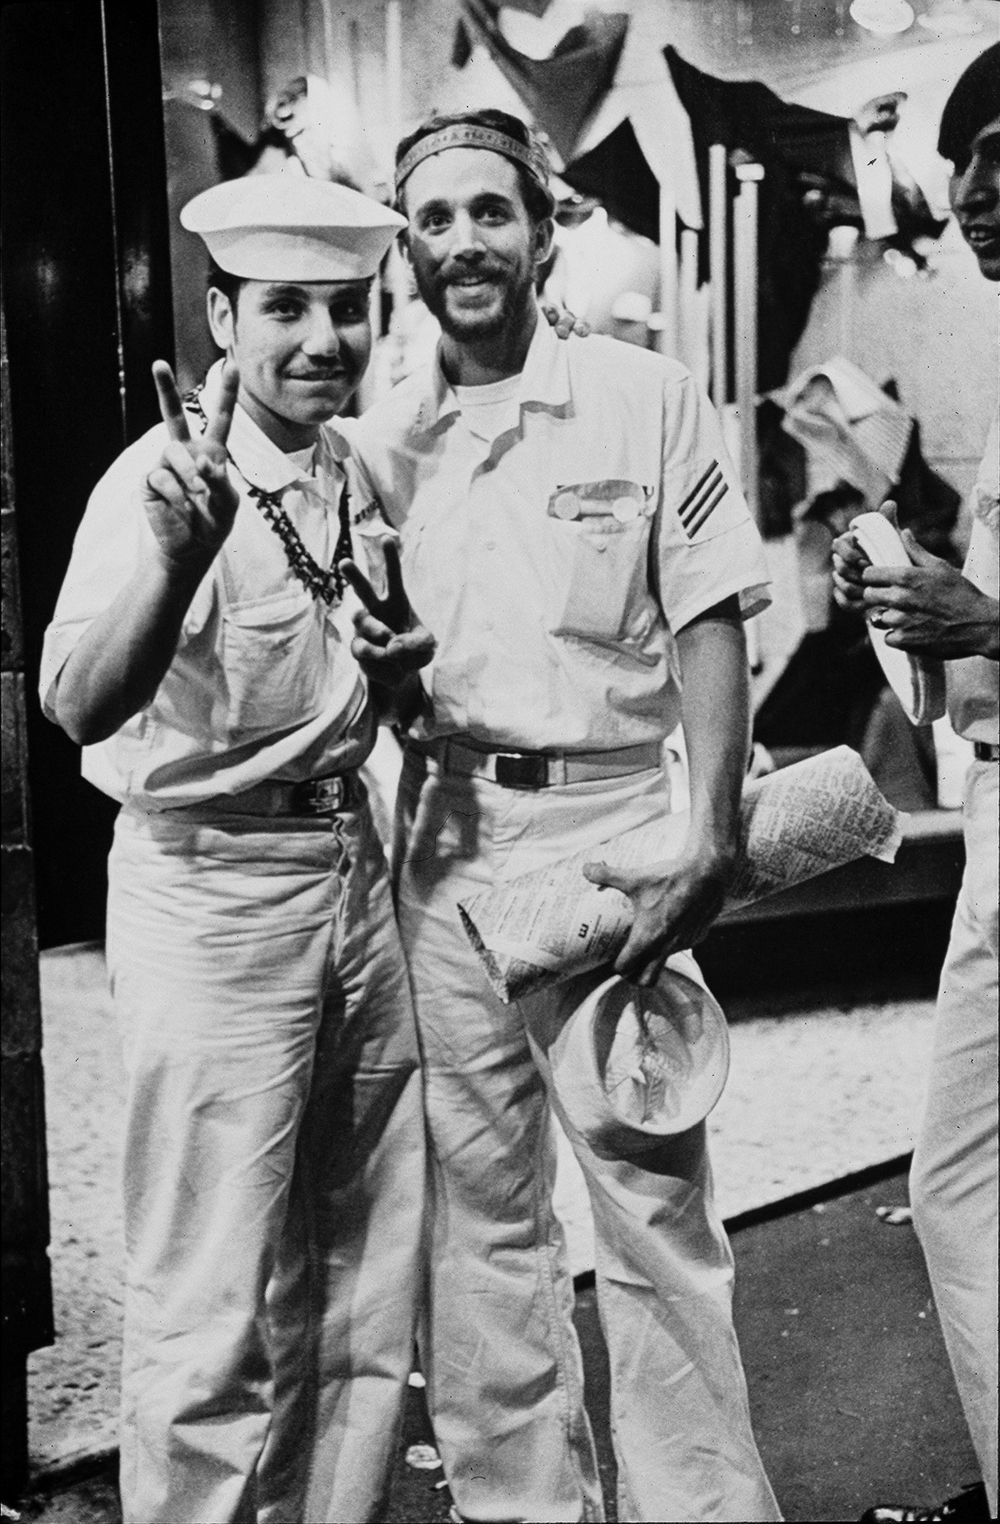 Two naval officers in Kings Cross circa 1970 in whites and making the peace sign. © Rennie Ellis Photographic Archive